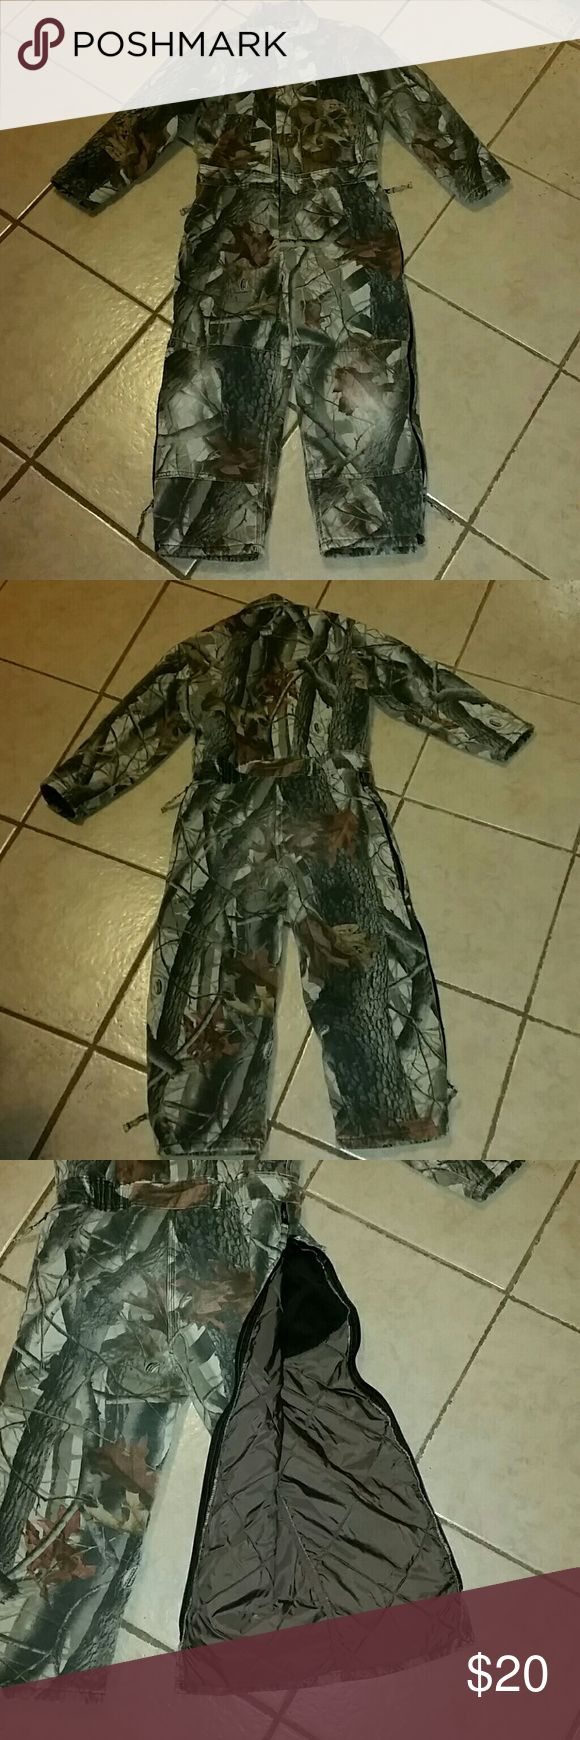 Youth Camo Coveralls Walls Youth Camo Coveralls. Worn but still lots of life left. My daughter outgrew this this hunting season. Youth size 10. Zips up or down legs Walls Jackets & Coats